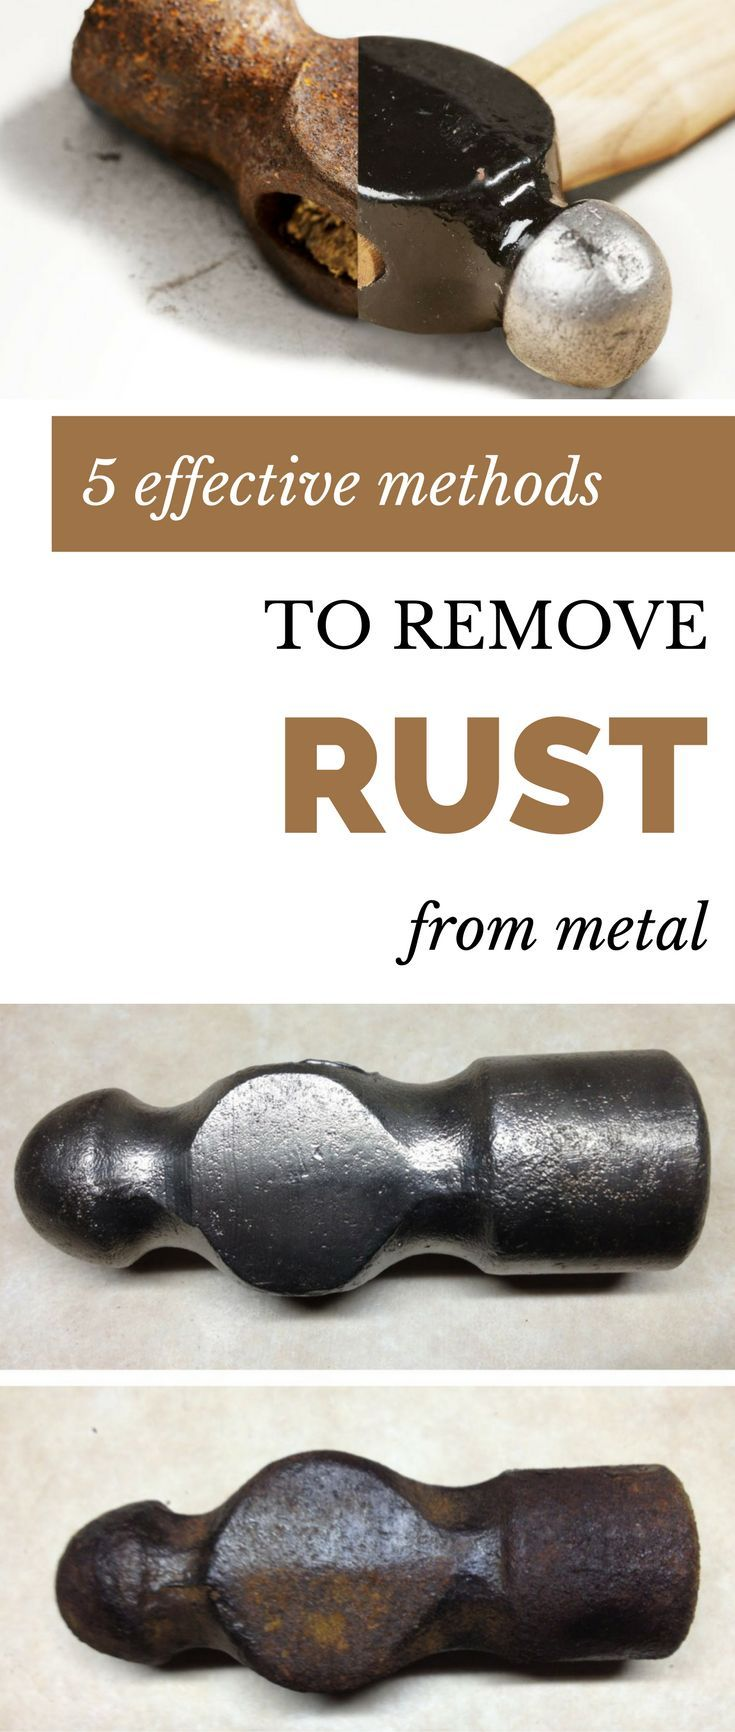 Rust remover with metal: basic methods and materials